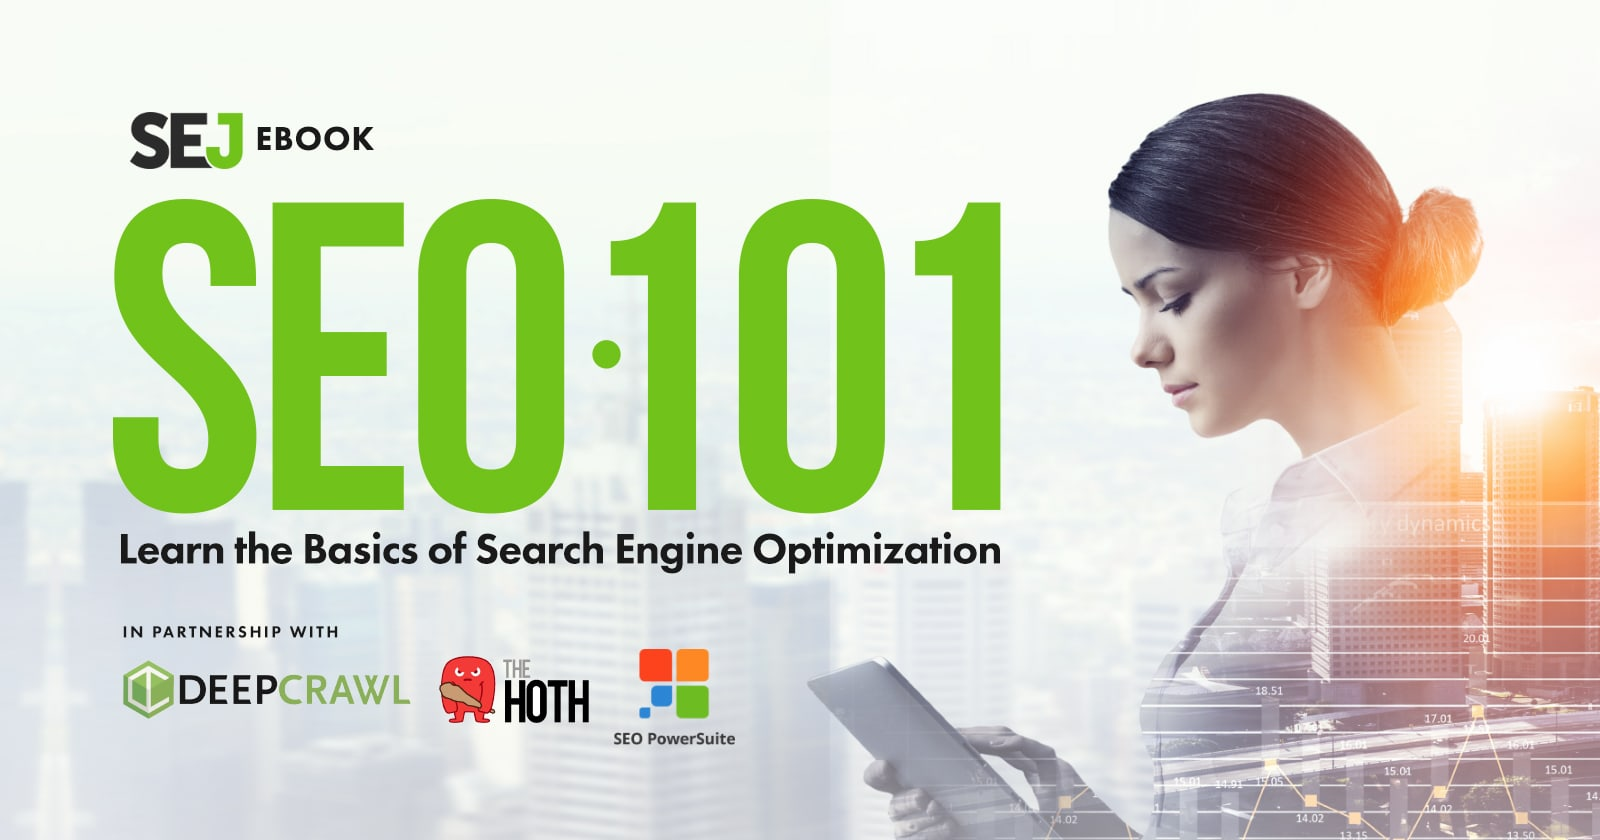 searchenginejournal.com - SEO 101: Learn the Basics of Search Engine Optimization